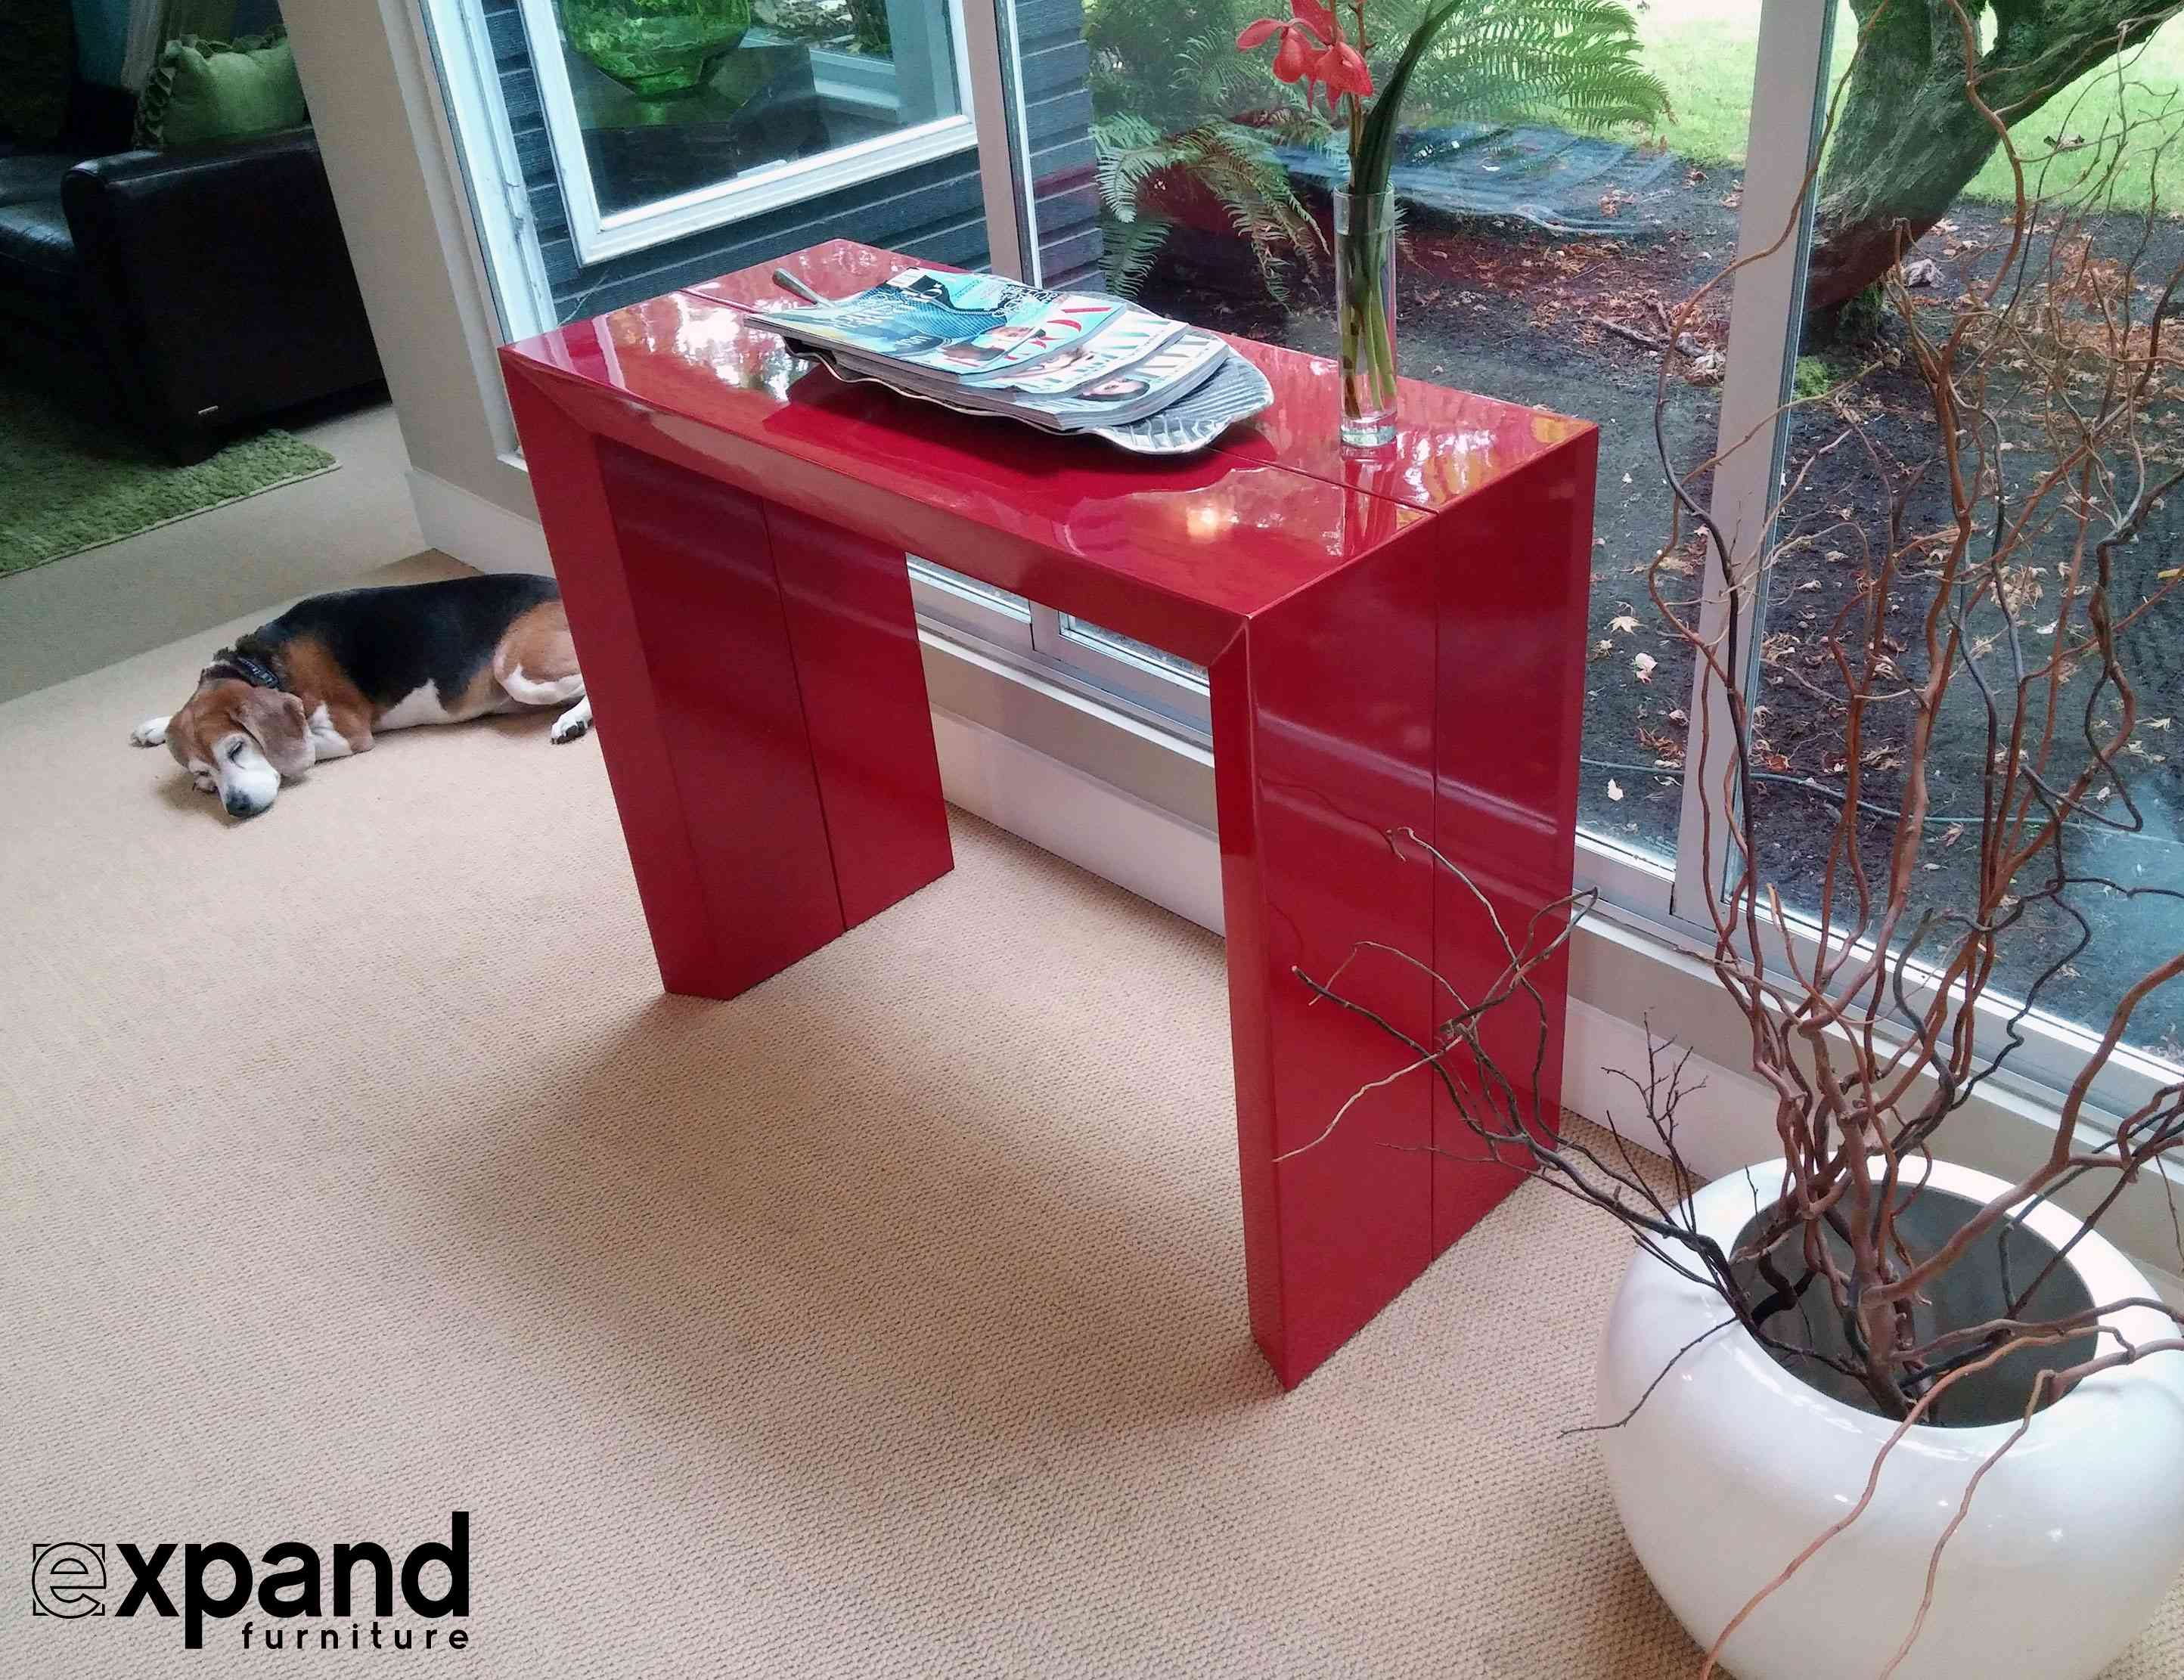 Expand furniture red table